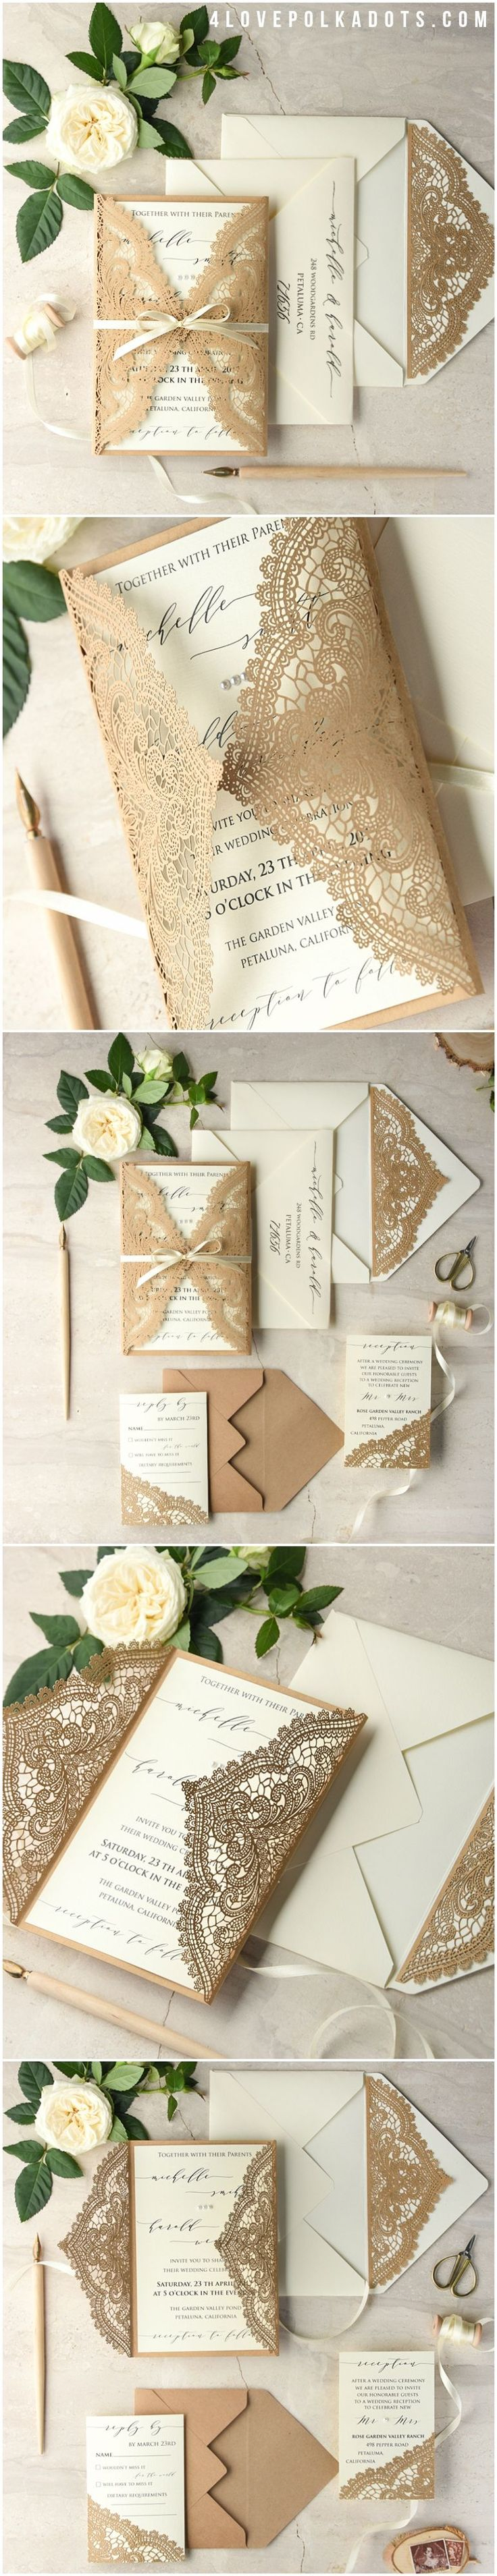 Romantic Laser cut lace wedding invitations and